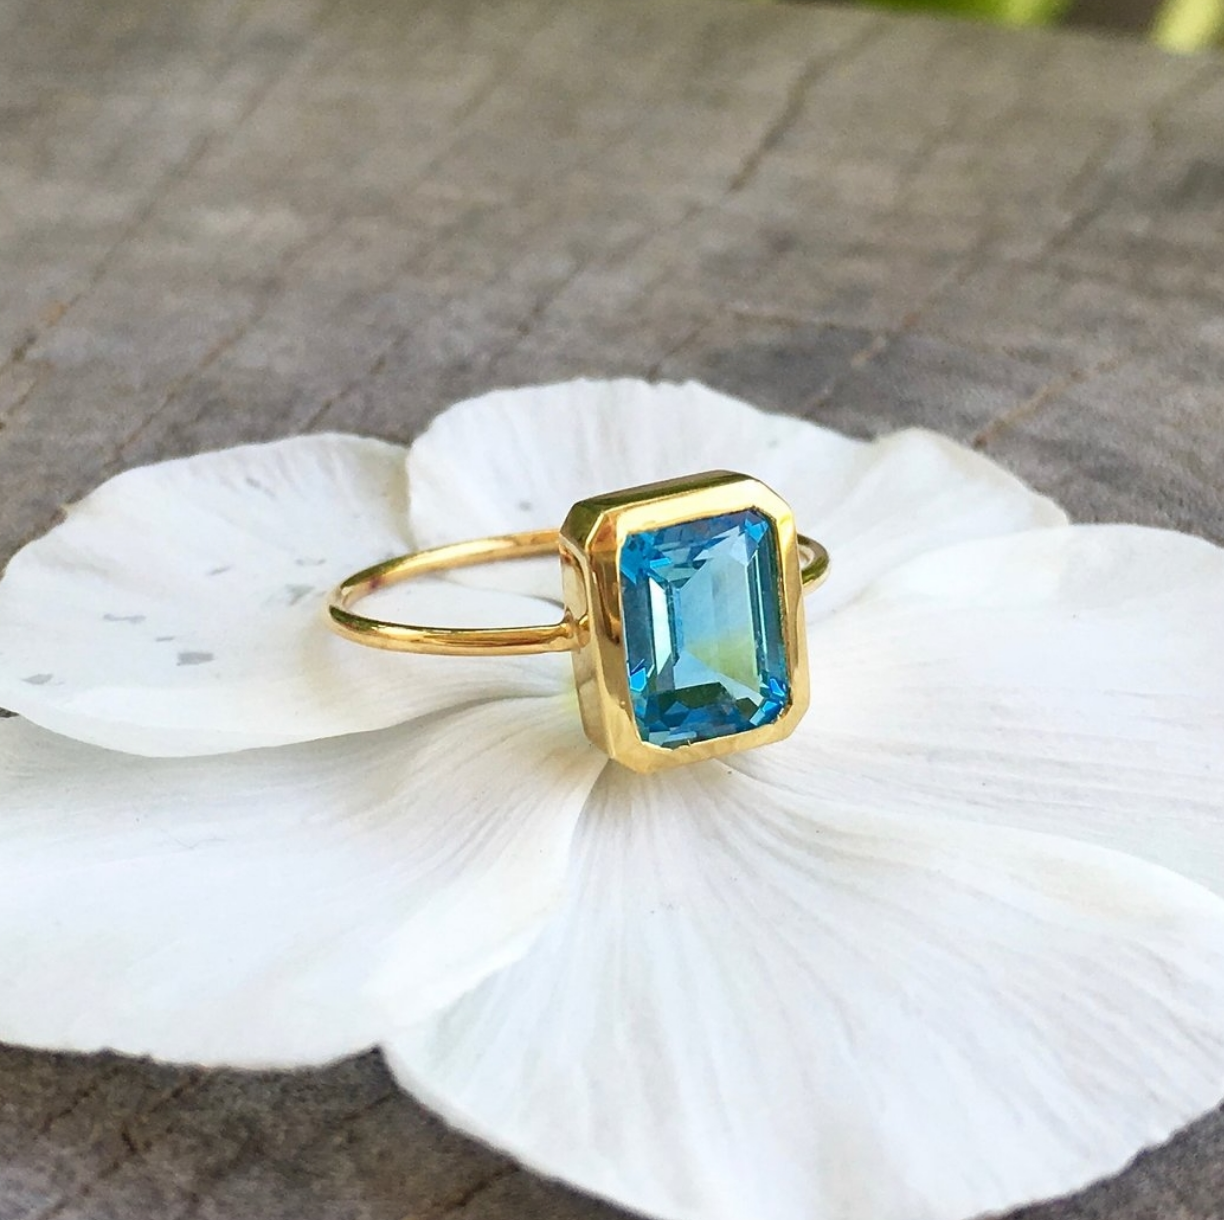 Ava Ring - Large